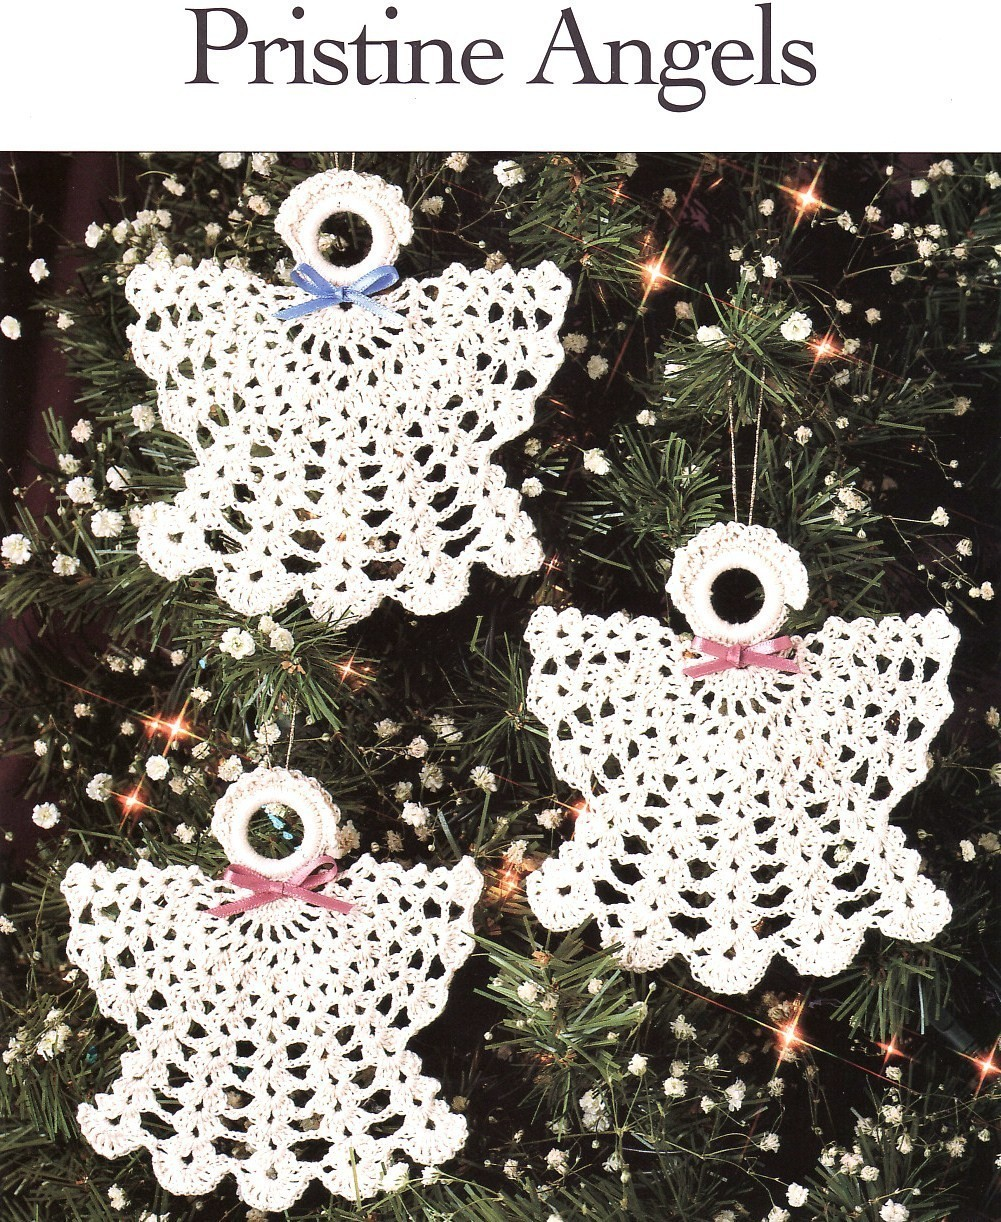 Free Crochet Cotton Christmas Patterns : Pristine Angels Crochet Patterns Christmas Ornaments ...